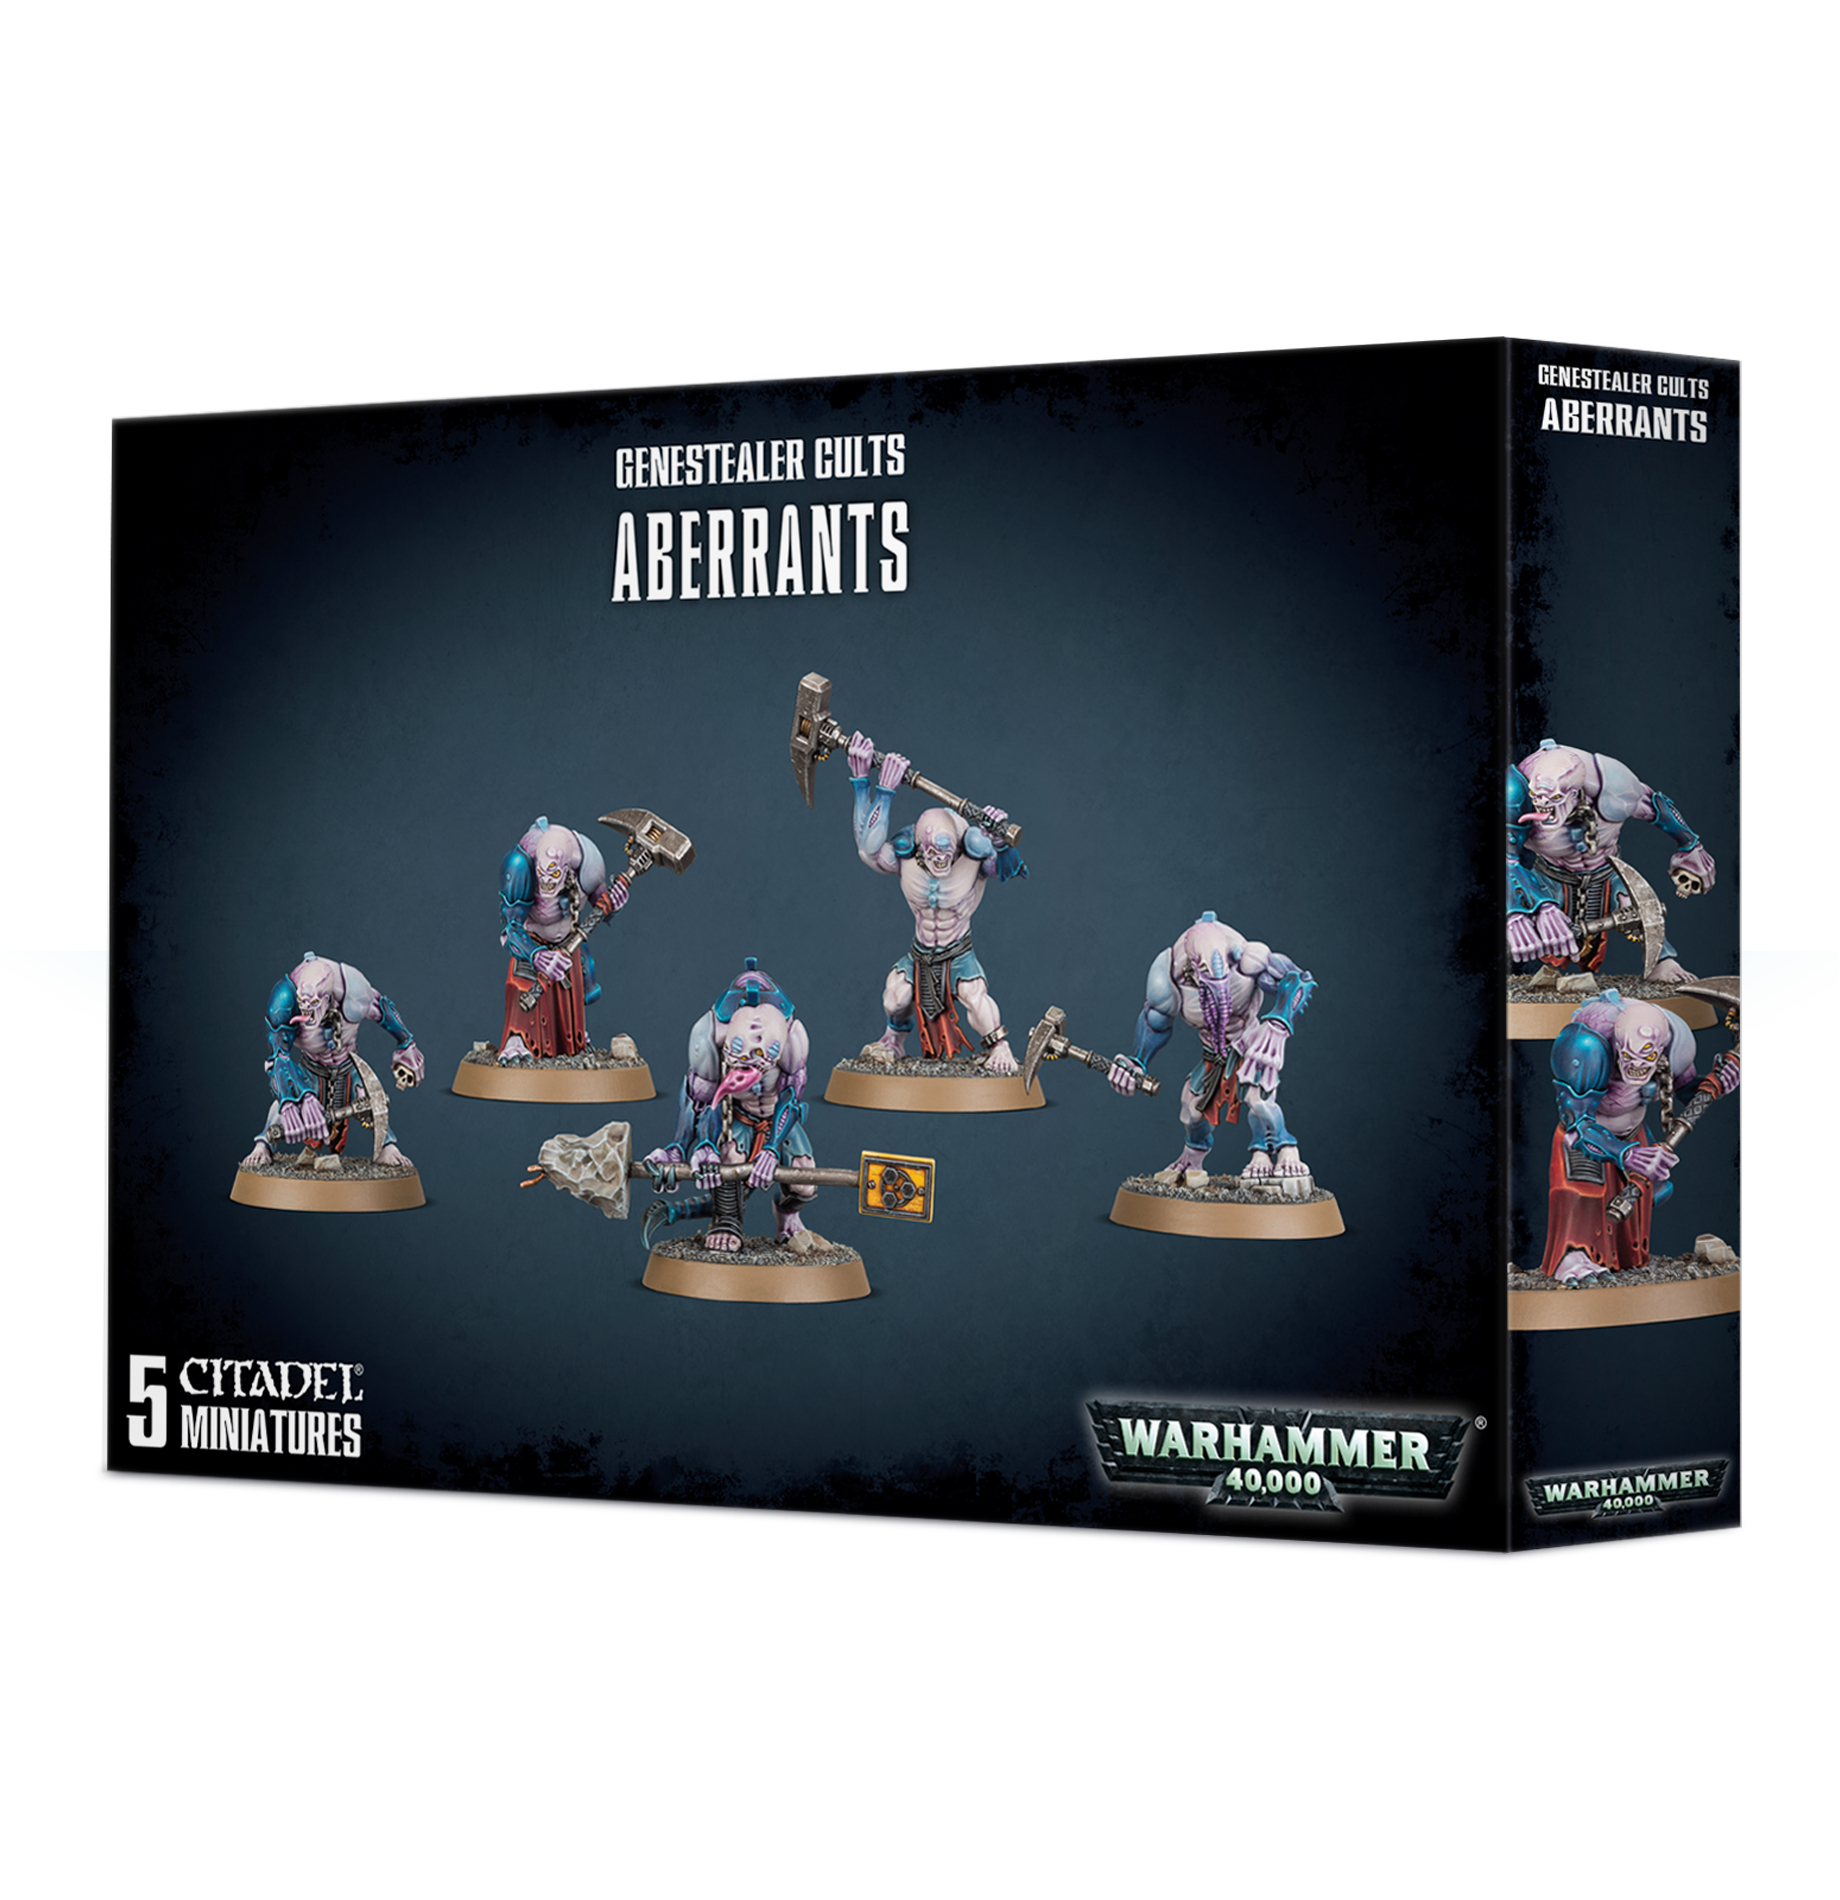 Warhammer 40,000: Genestealer Cults: Aberrants